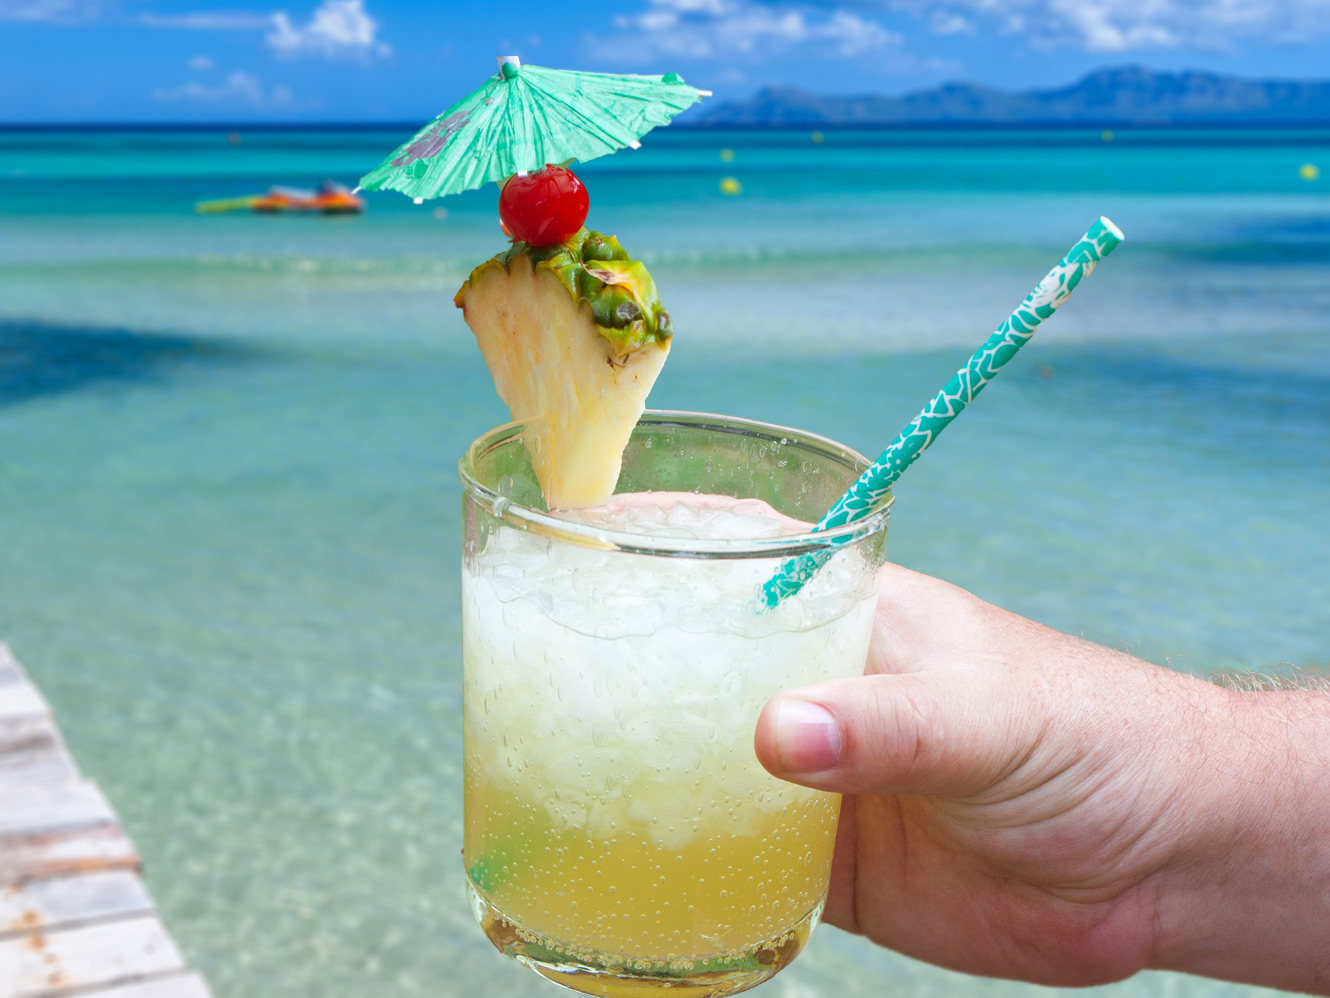 Jamaican Me Crazy Cocktail in a clear glass garnished with pineapple, cherry, umbrella and straw with an ocean background